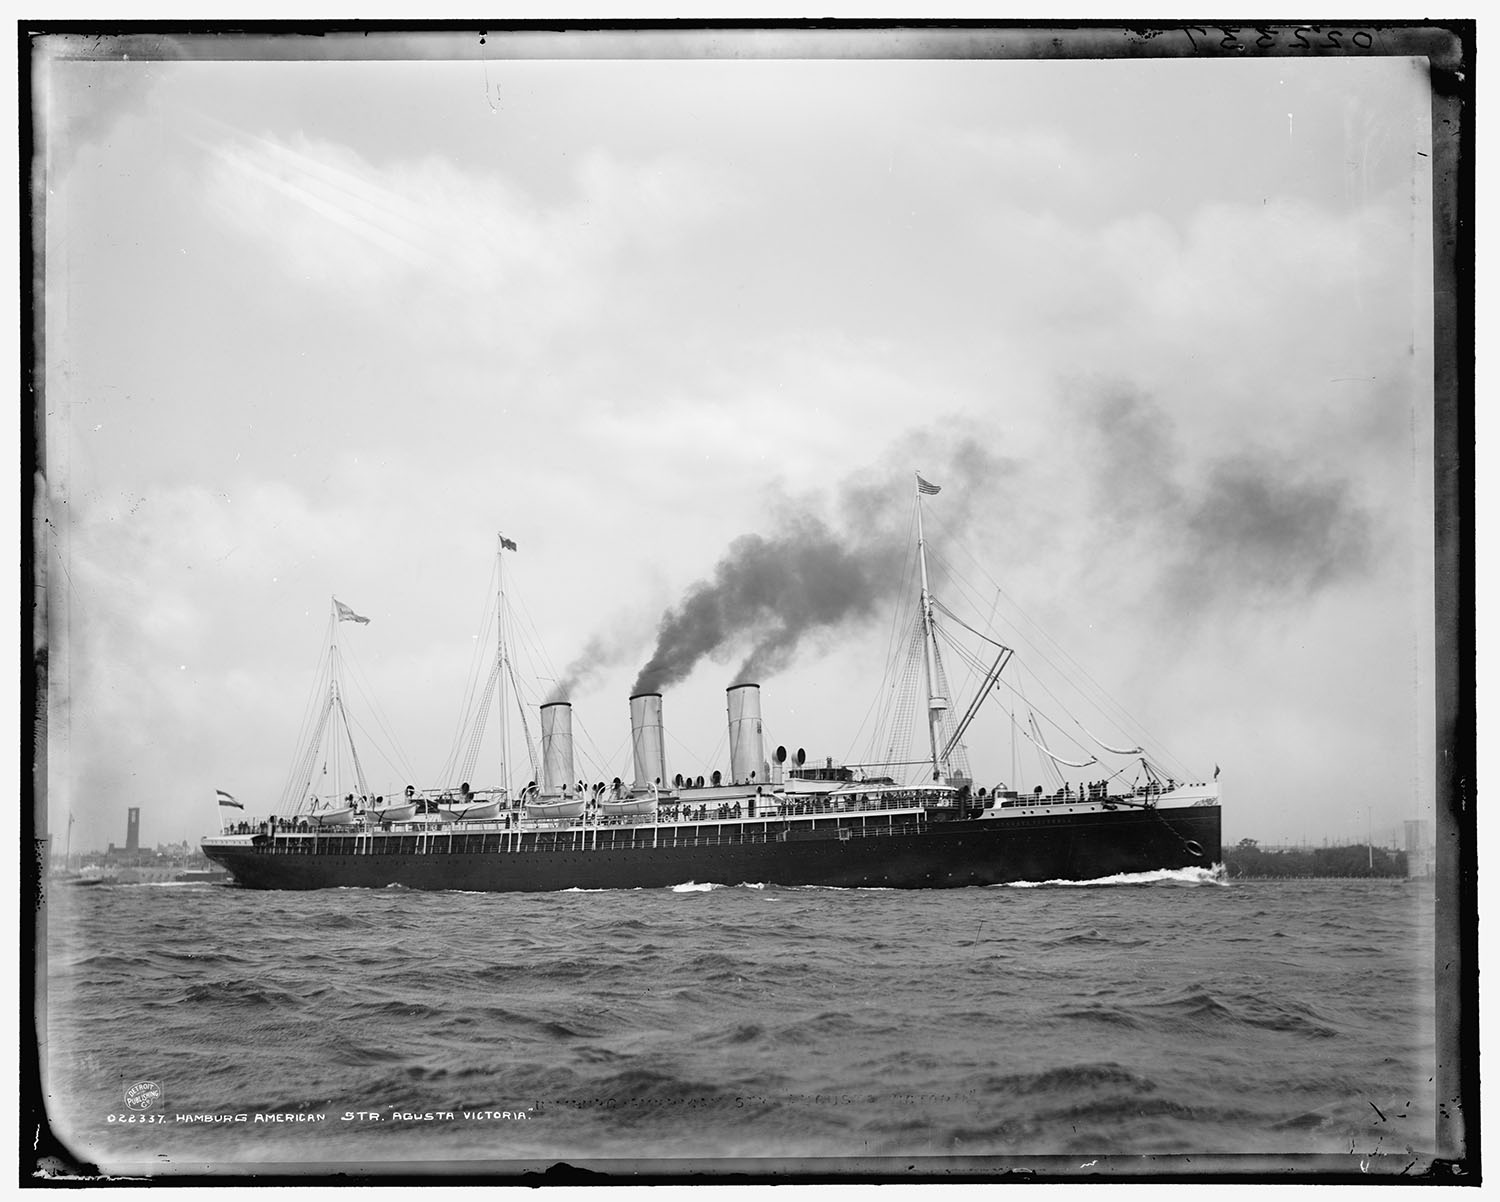 Photograph of the Augusta Victoria, c. 1890. Courtesy of Wikimedia Commons.